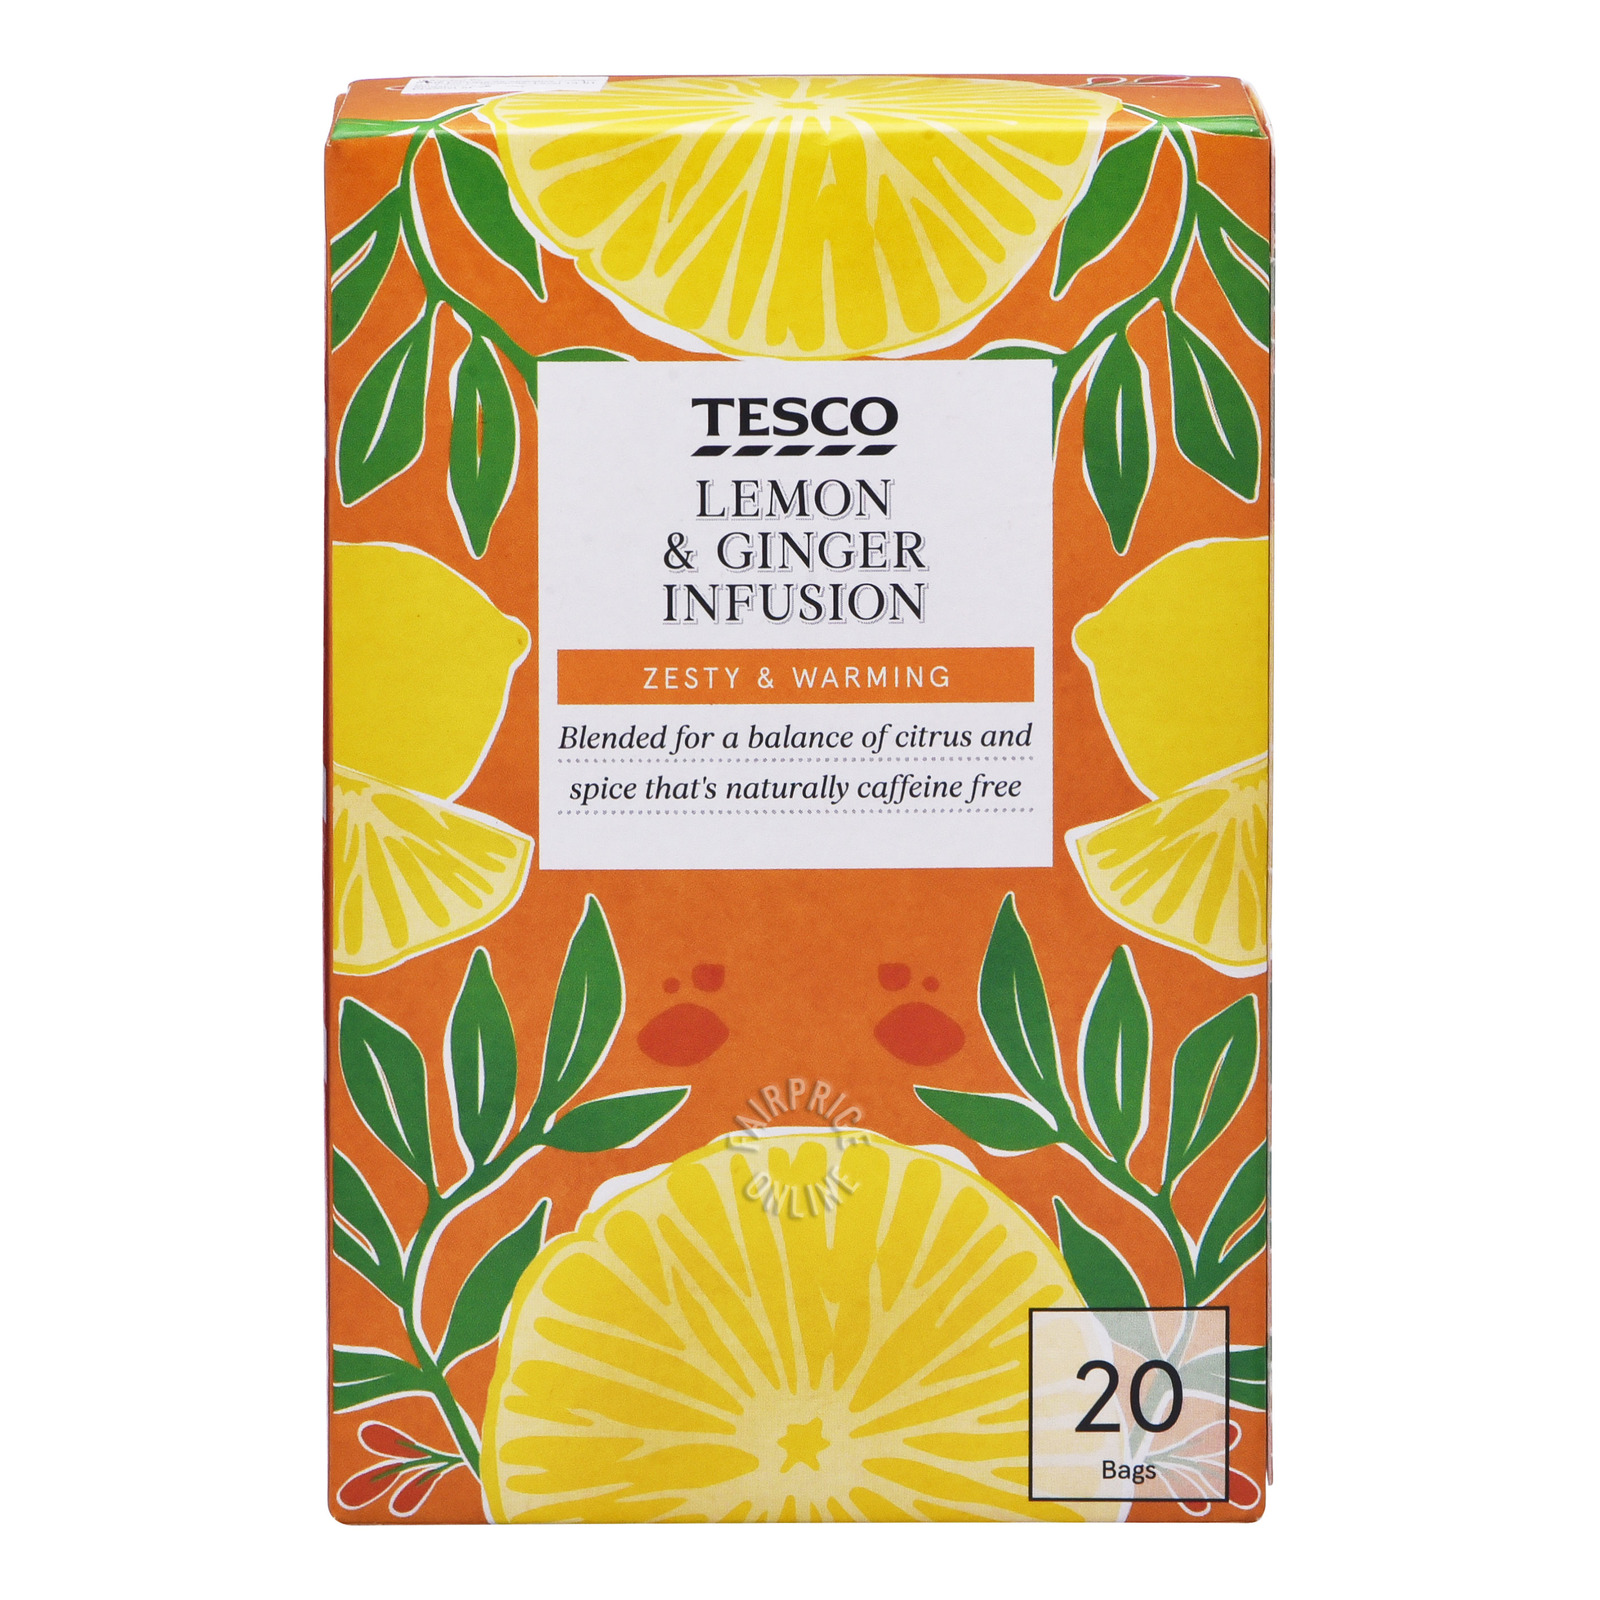 Tesco Infusion Tea Bags - Lemon & Ginger